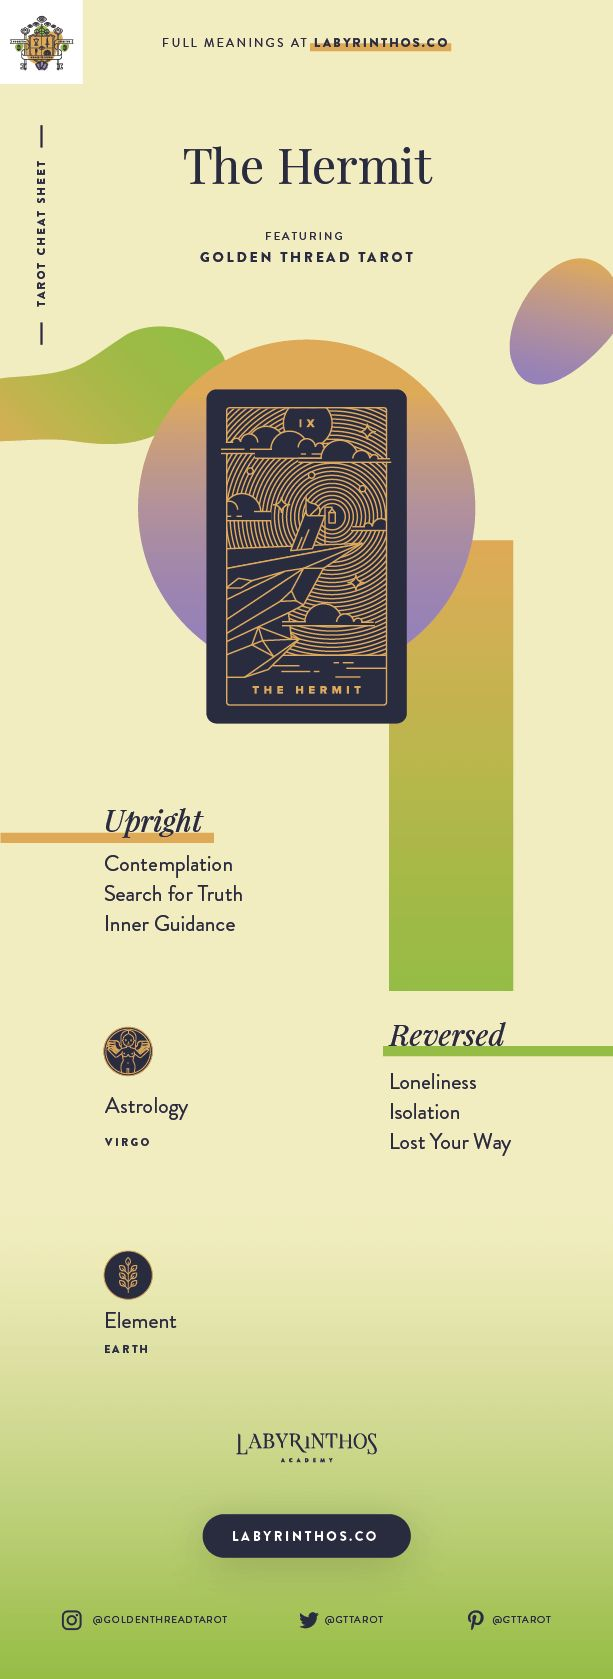 The Hermit Meaning - Tarot Card Meanings Cheat Sheet. Art from Golden Thread Tarot.